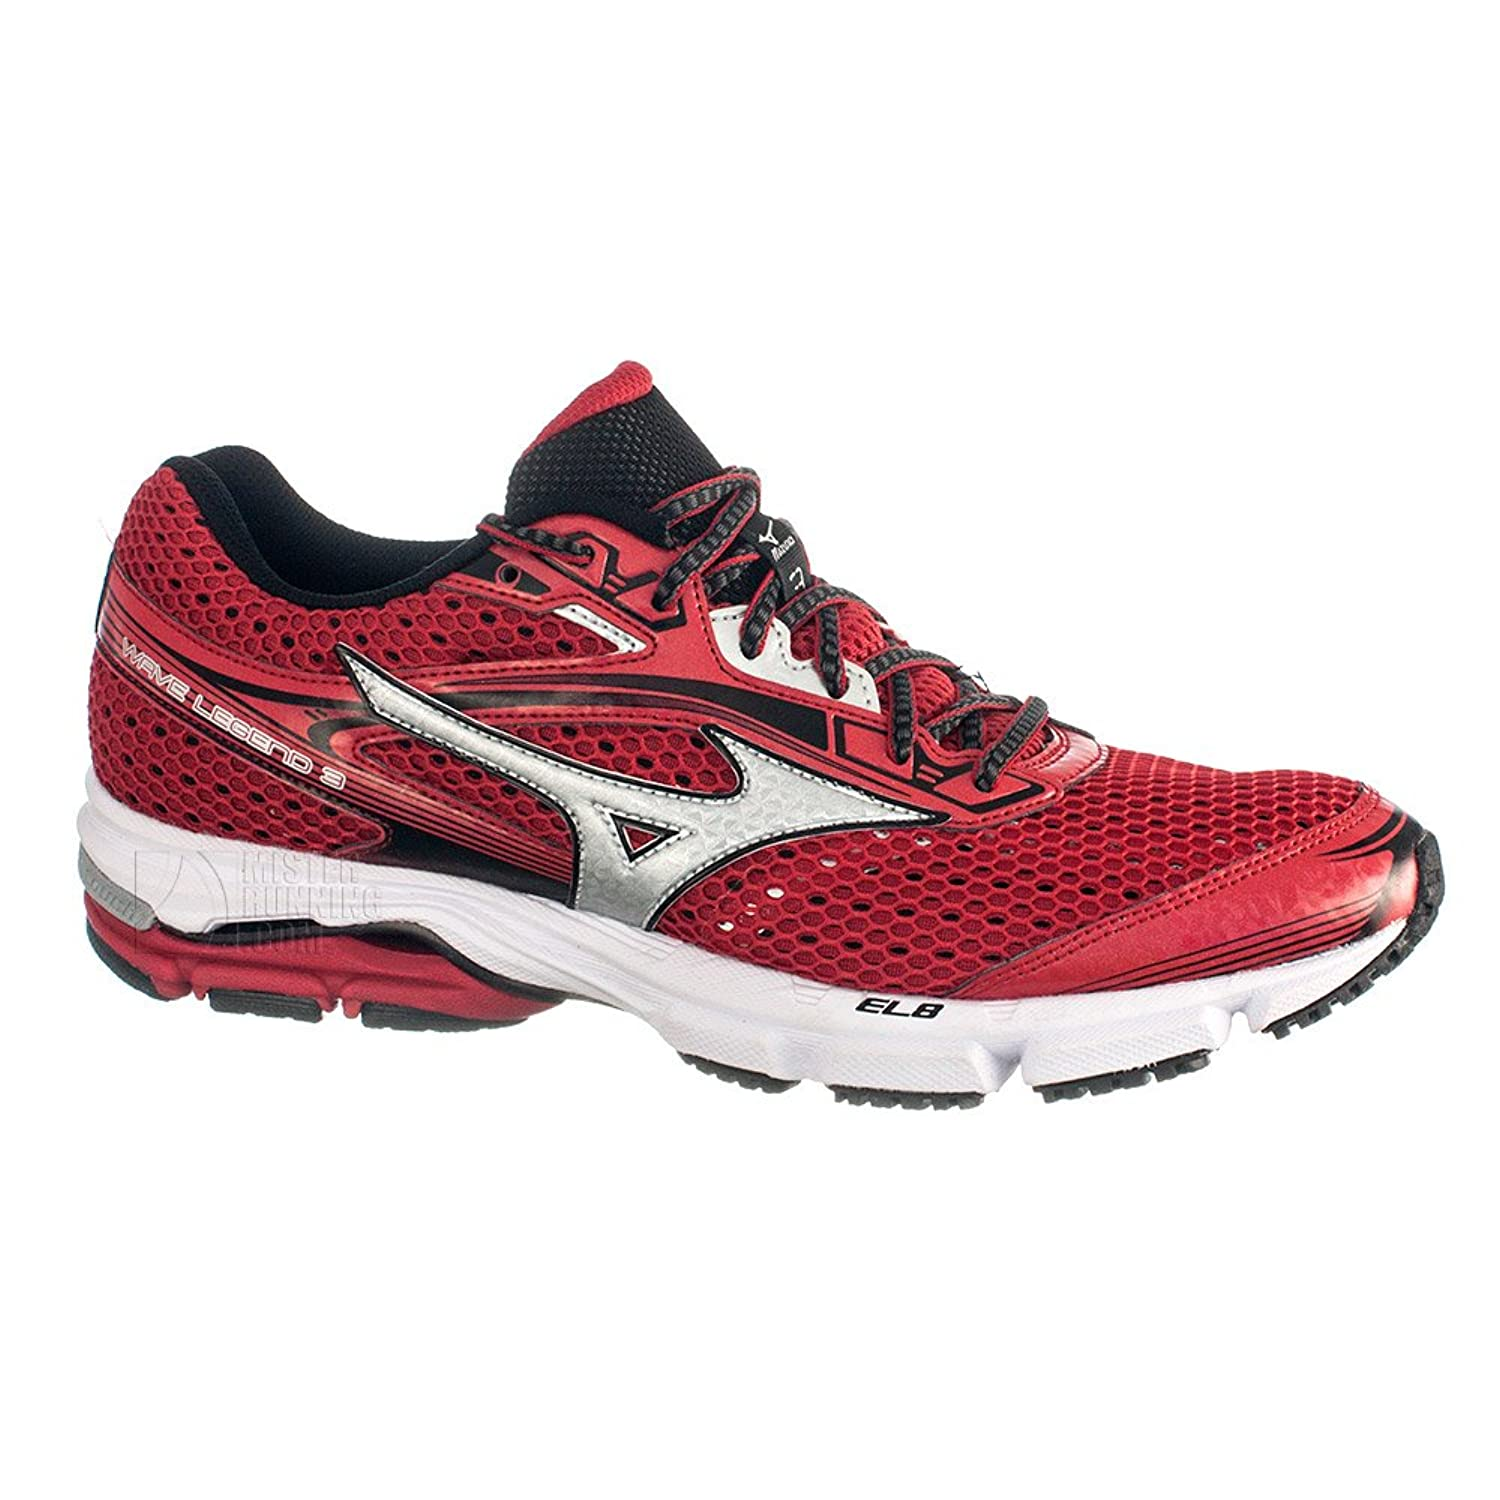 acba031f01 Mizuno Shoes Running Sneaker Men Wave Legend 3 Red Grey Size 11 hot sale  2017